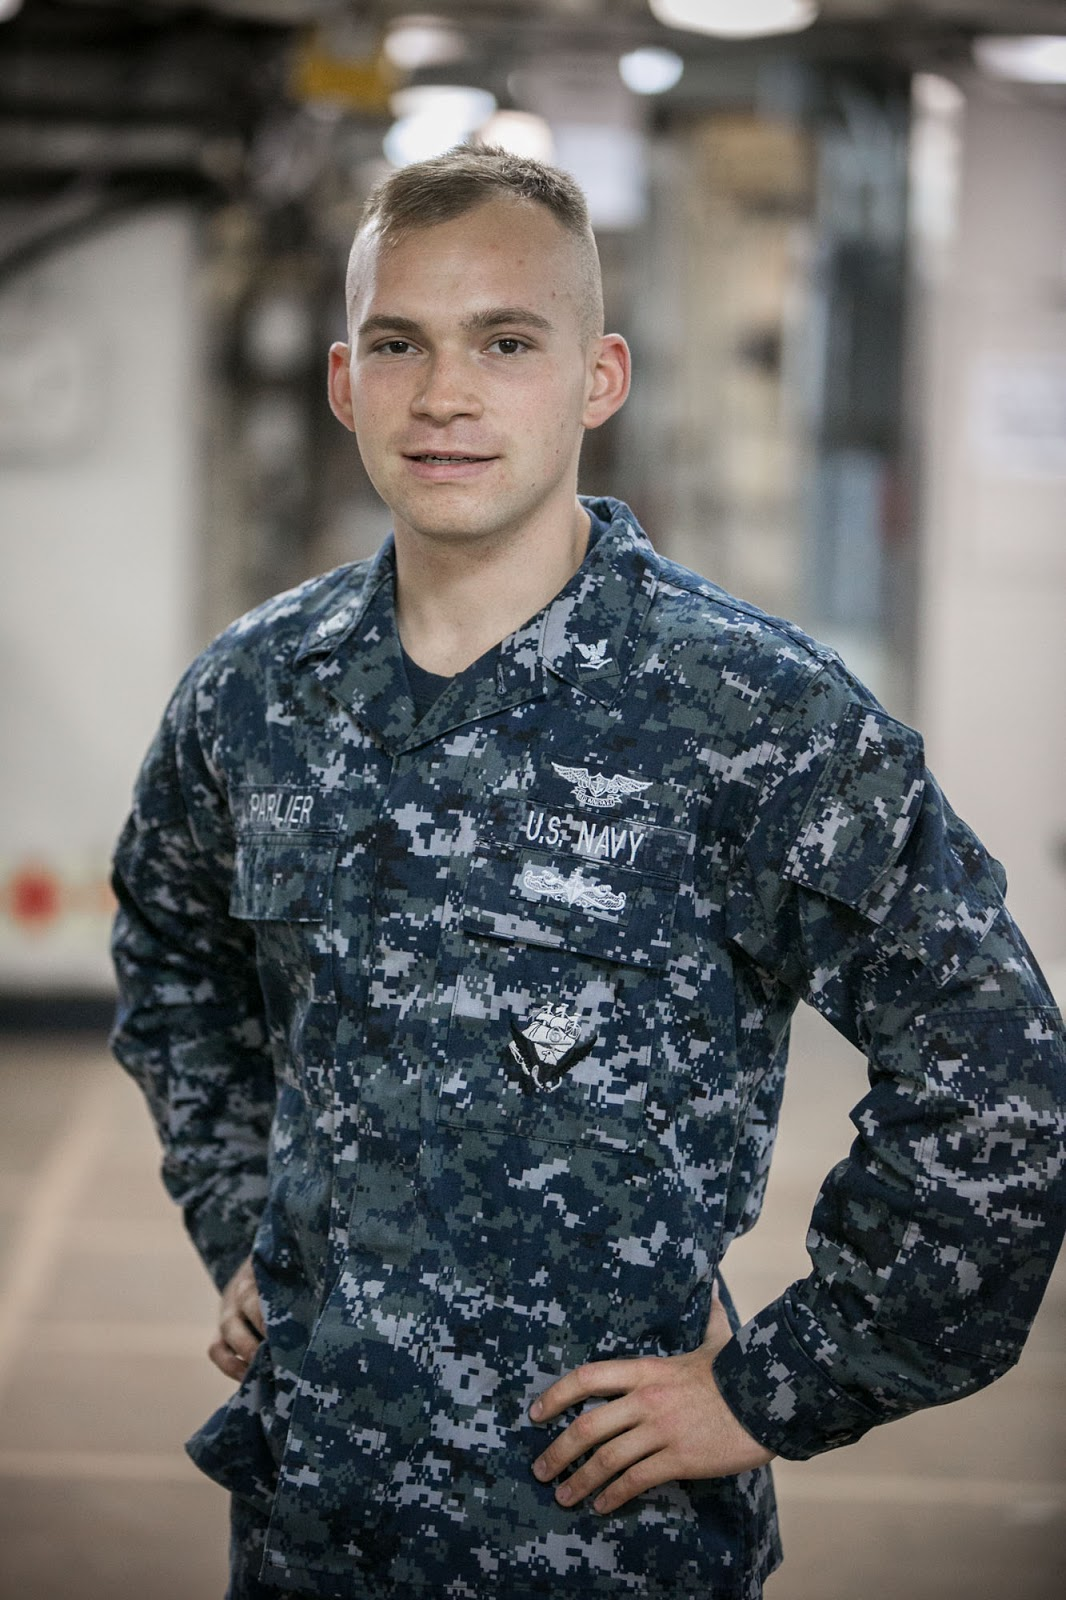 newfane n y native serving in aboard navy s only forward petty officer 3rd class zachary parlier is an aviation maintenance administrationman aboard the wasp class amphibious assault ship operating out of sasebo